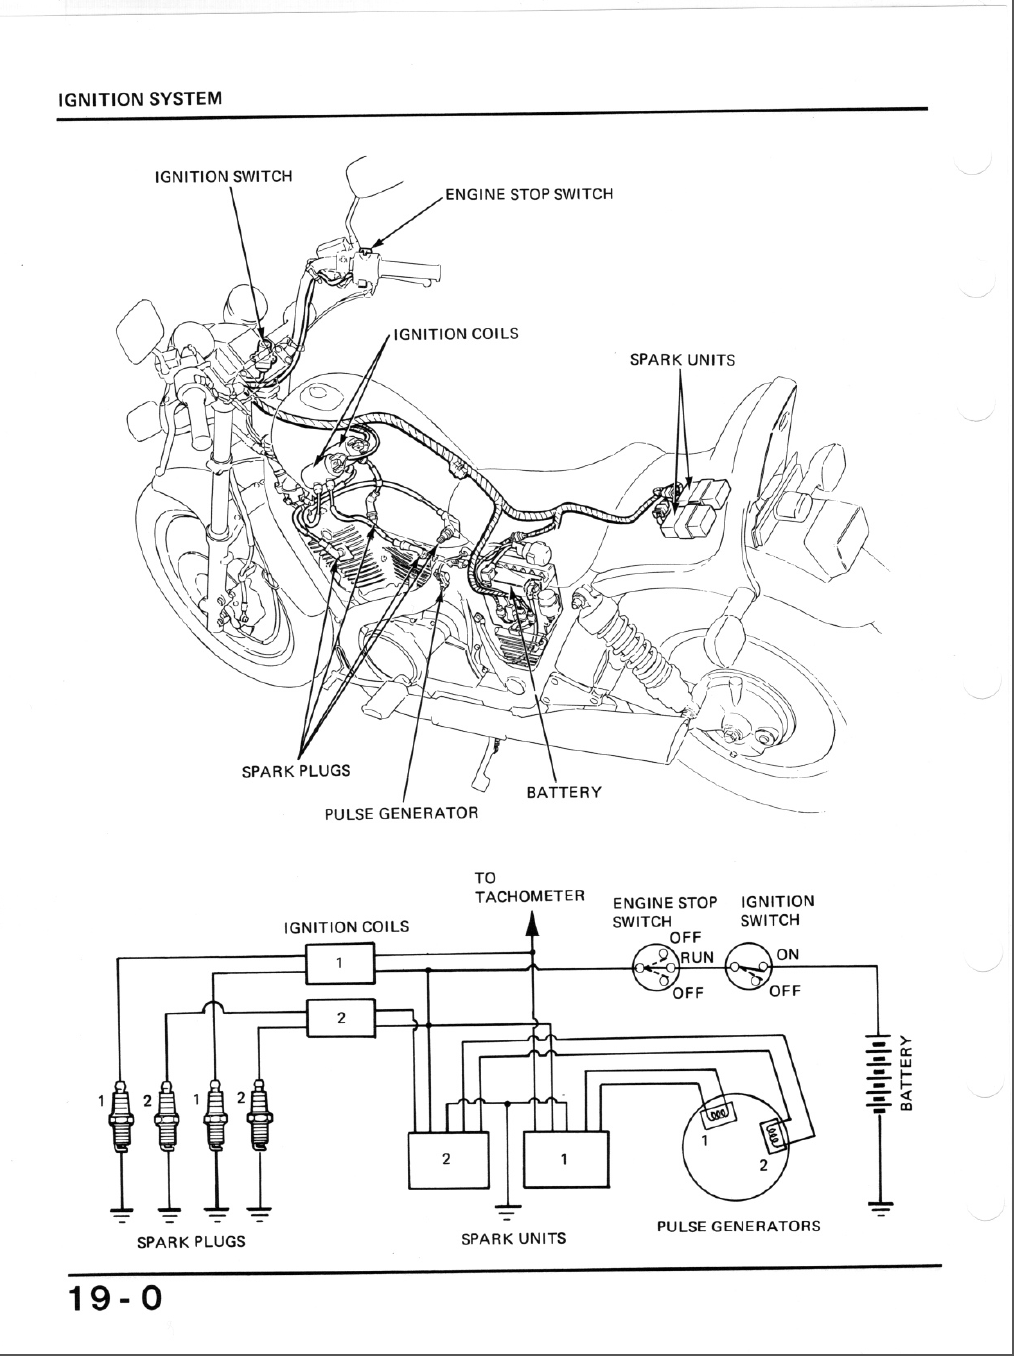 honda valkyrie fuse box location best wiring library Victory Motorcycle Kingpin Wiring wiring diagram for 1984 honda shadow wiring diagram todays1984 honda shadow wiring diagram wiring diagrams electrical